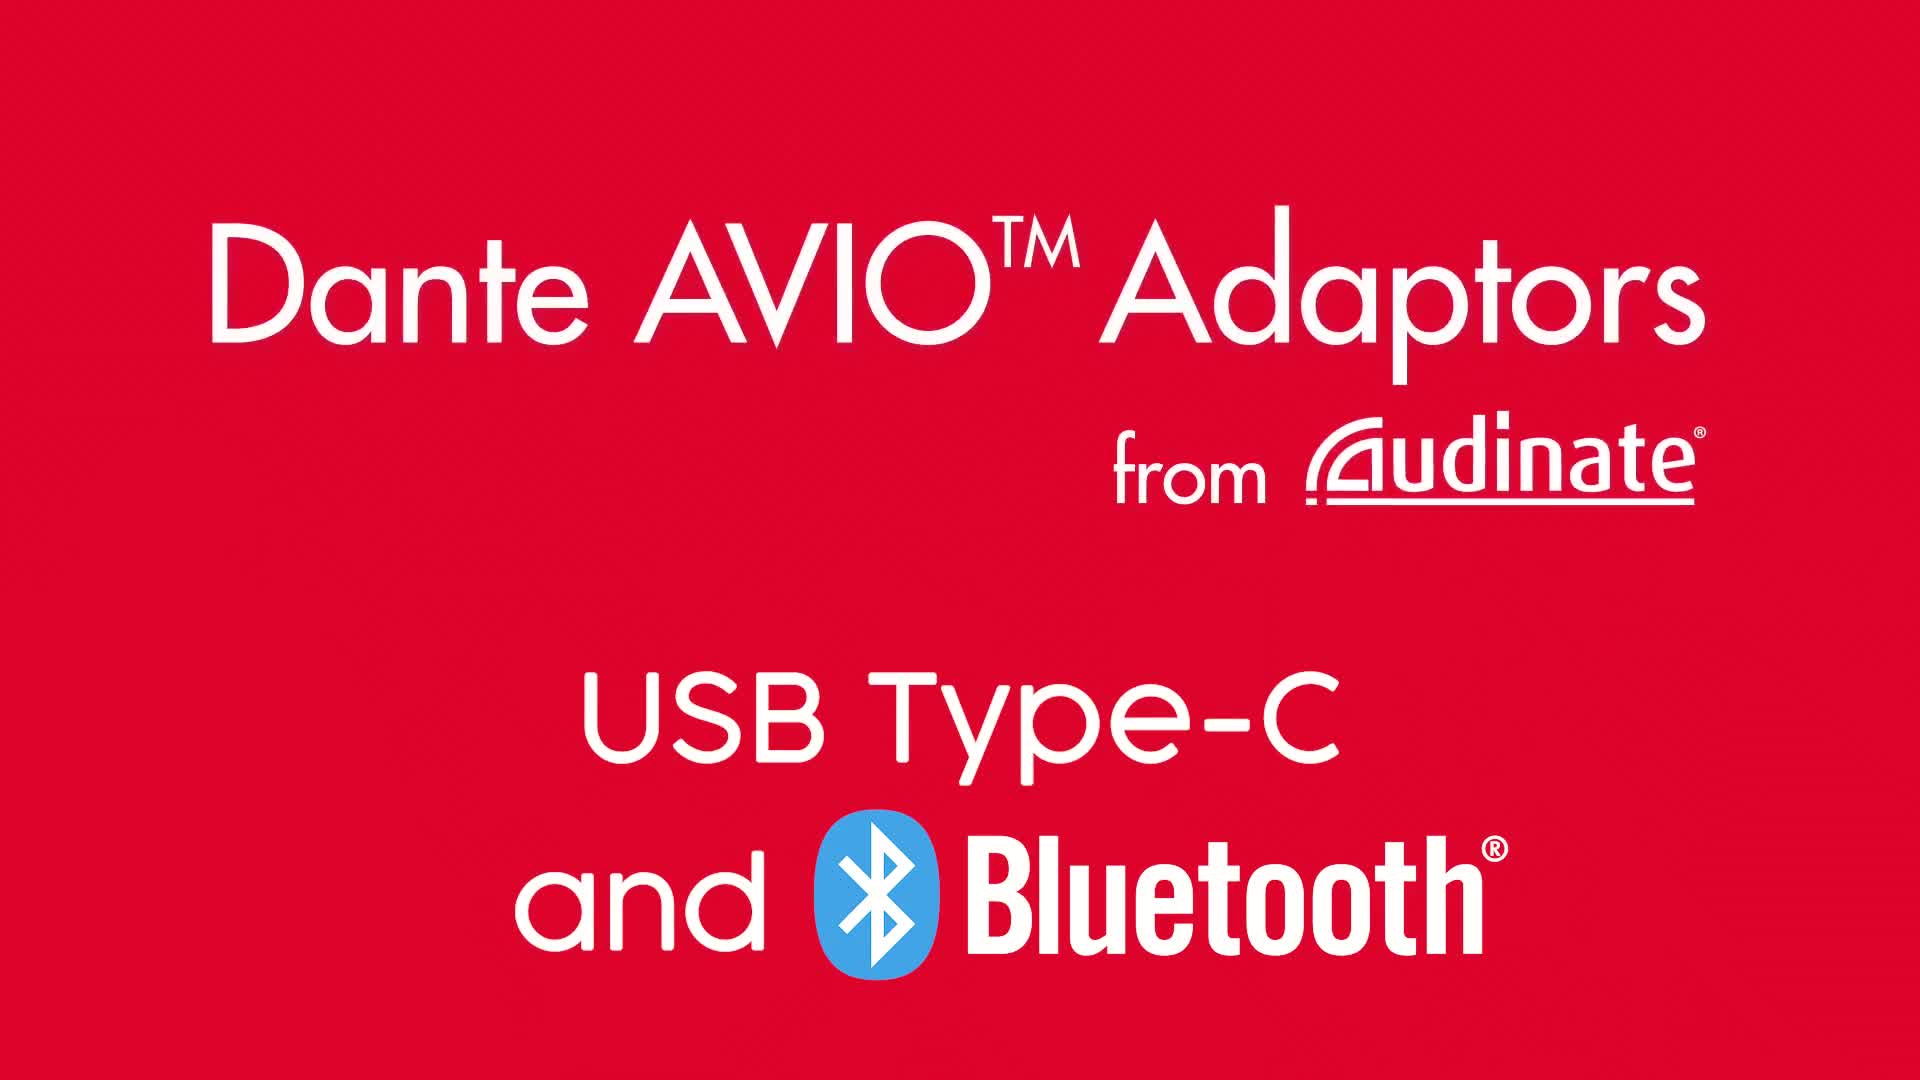 New Products: Dante AVIO USB-C and Bluetooth Adapters